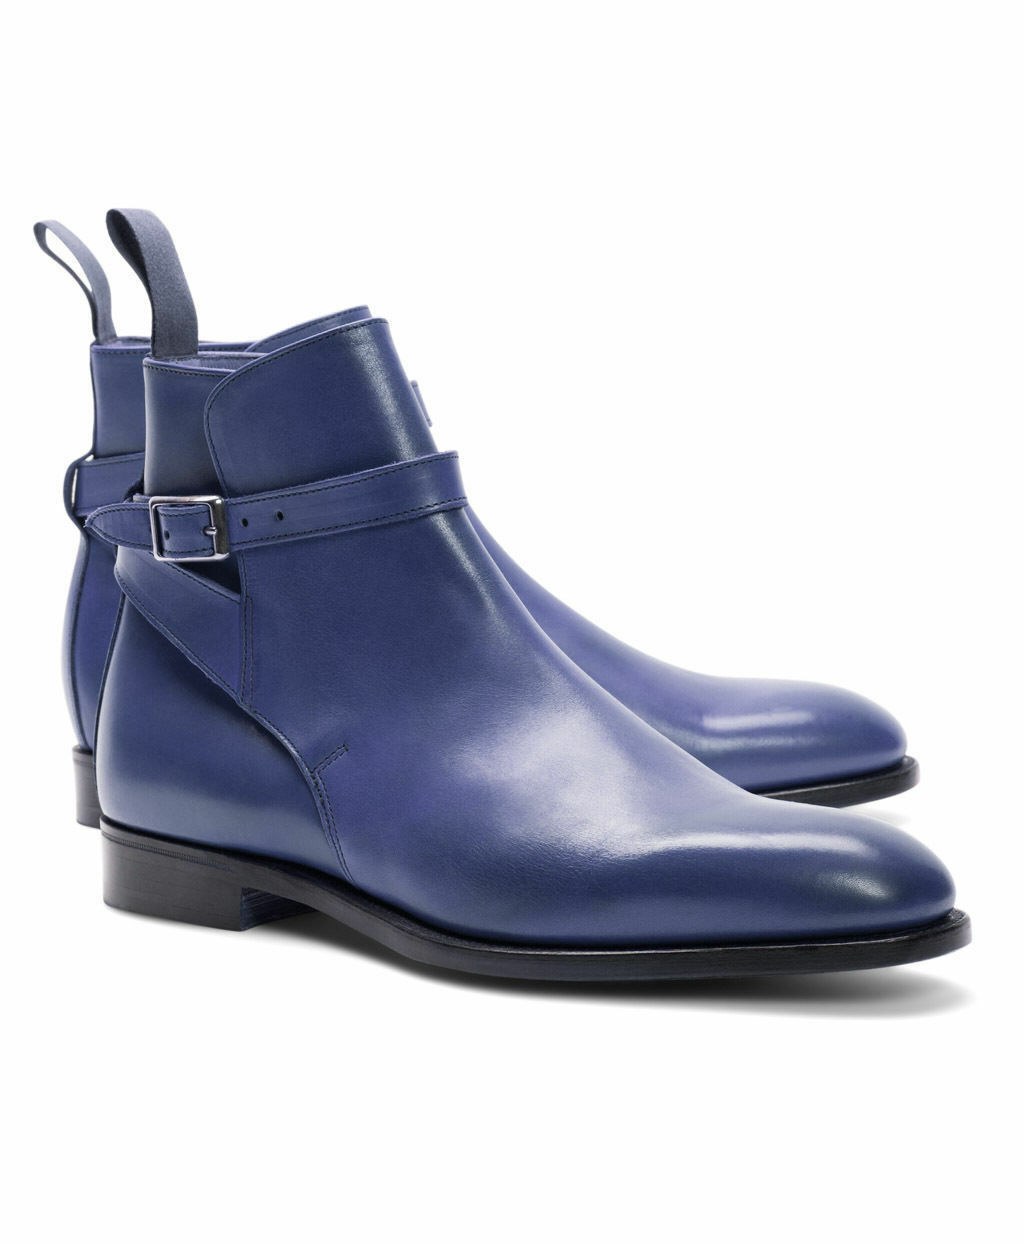 Uomo HAND CRAFTED JODHPURS LEATHER BOOTS ANKLE HIGH DRESS DRESS HIGH FORMAL WEDDING BOOTS c93b48